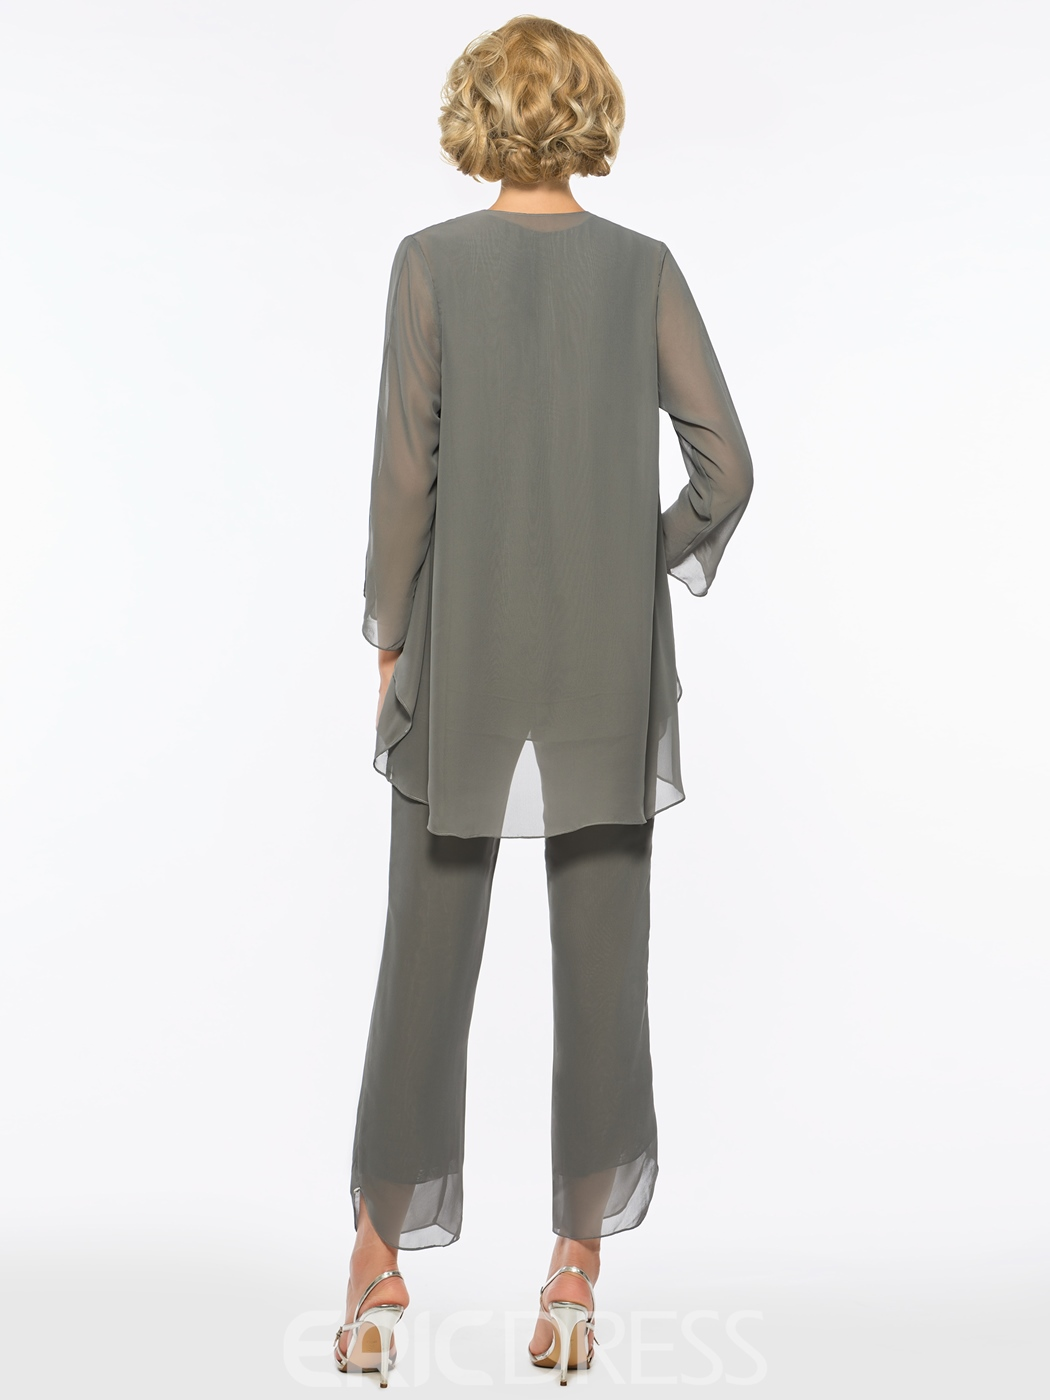 Ericdress Modest Chiffon Long Sleeves Mother of the Bride Jumpsuit